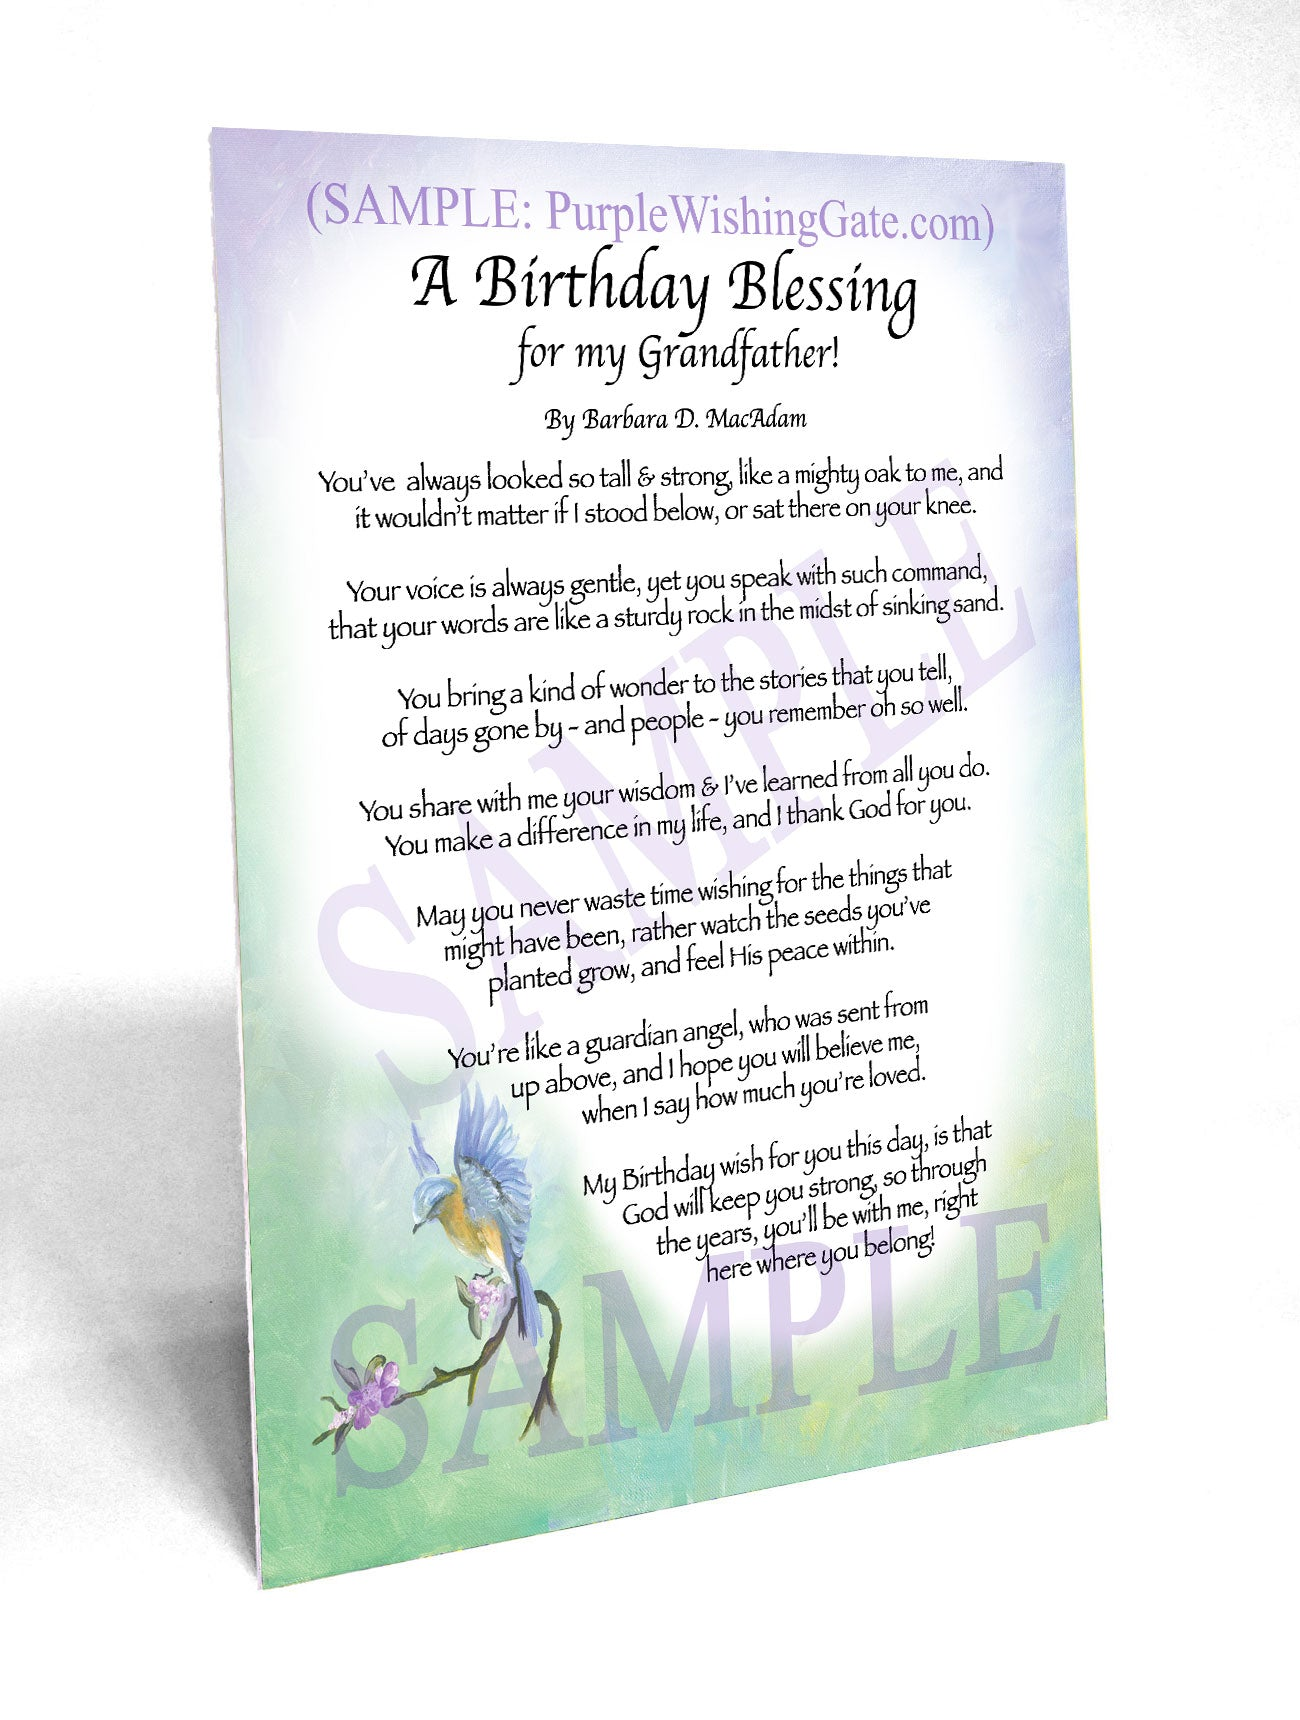 A Birthday Blessing for my Grandfather! - Birthday Gift - PurpleWishingGate.com